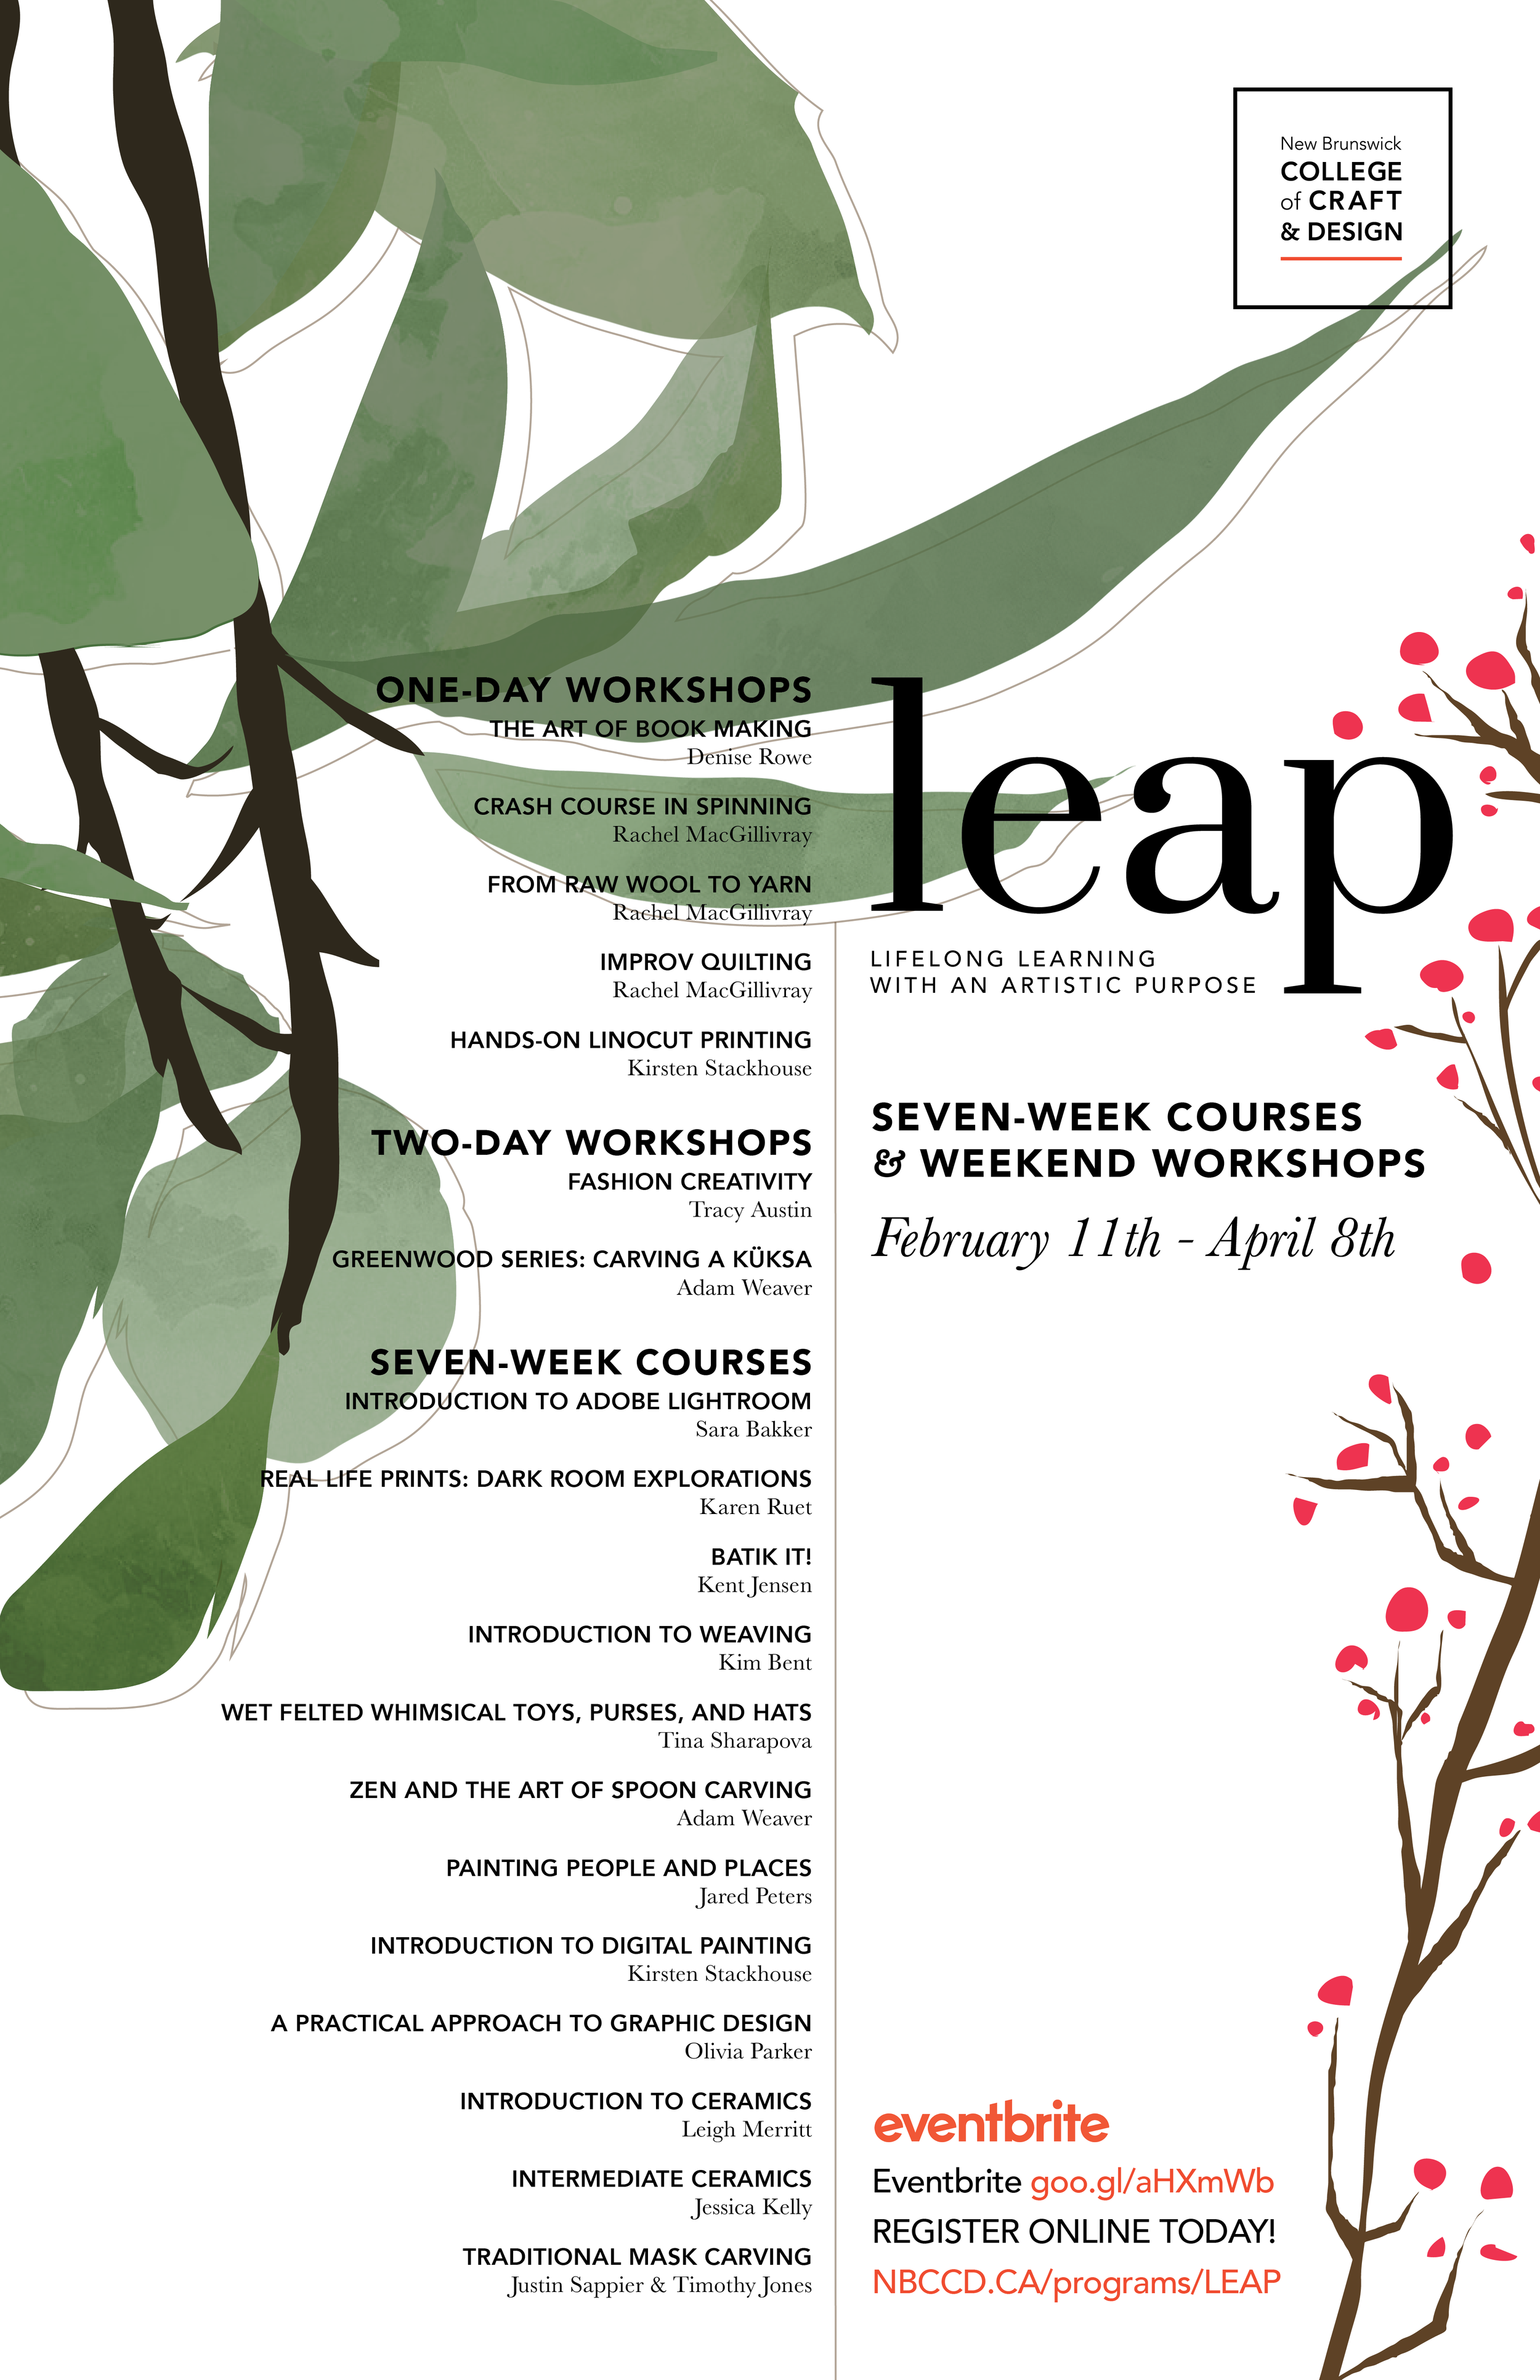 leap poster - Poster for the list of winter LEAP courses offered by the New Brunswick College of Craft & Design.